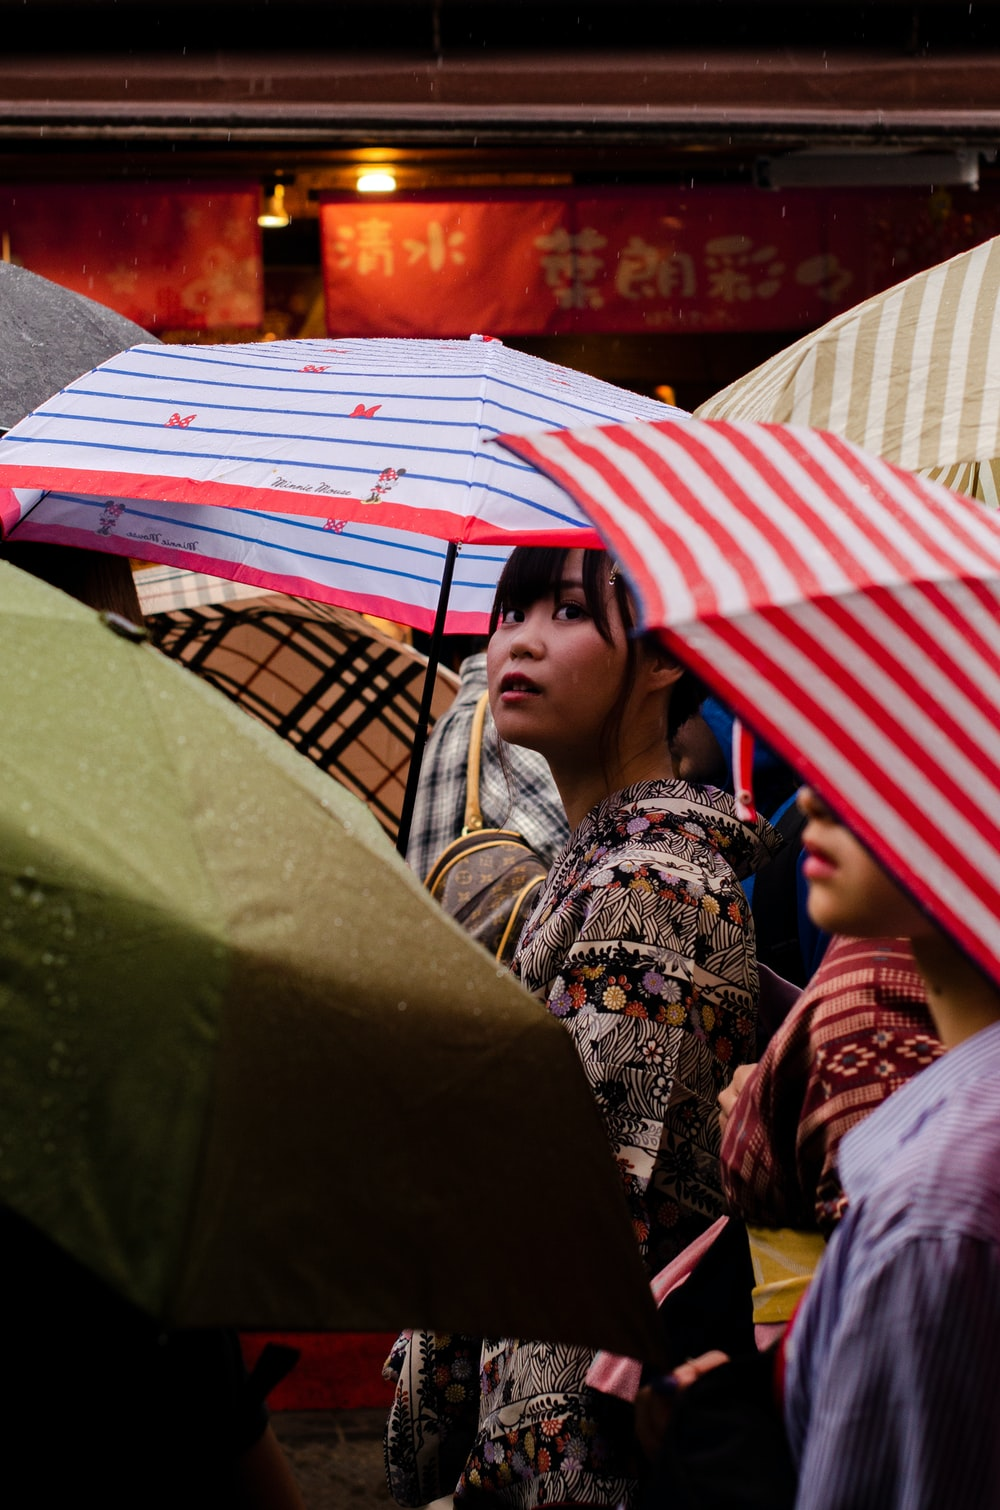 women using a red umbrella during daytime